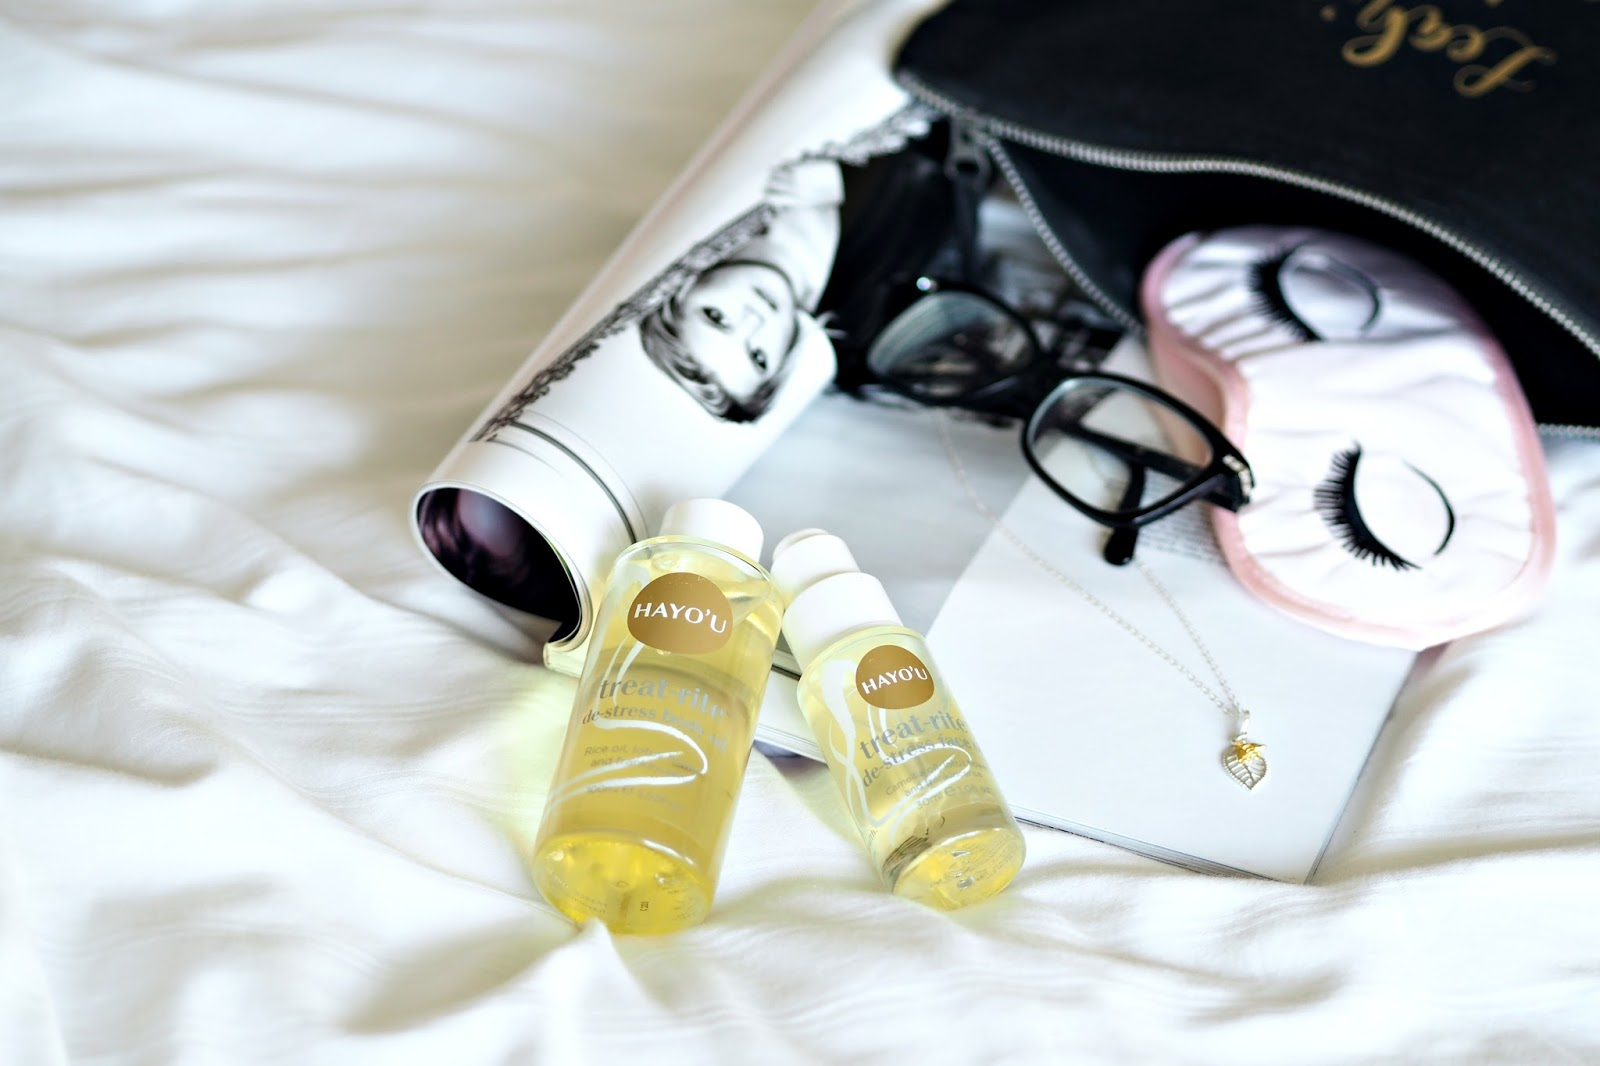 Hayo'u Face and Body Oil